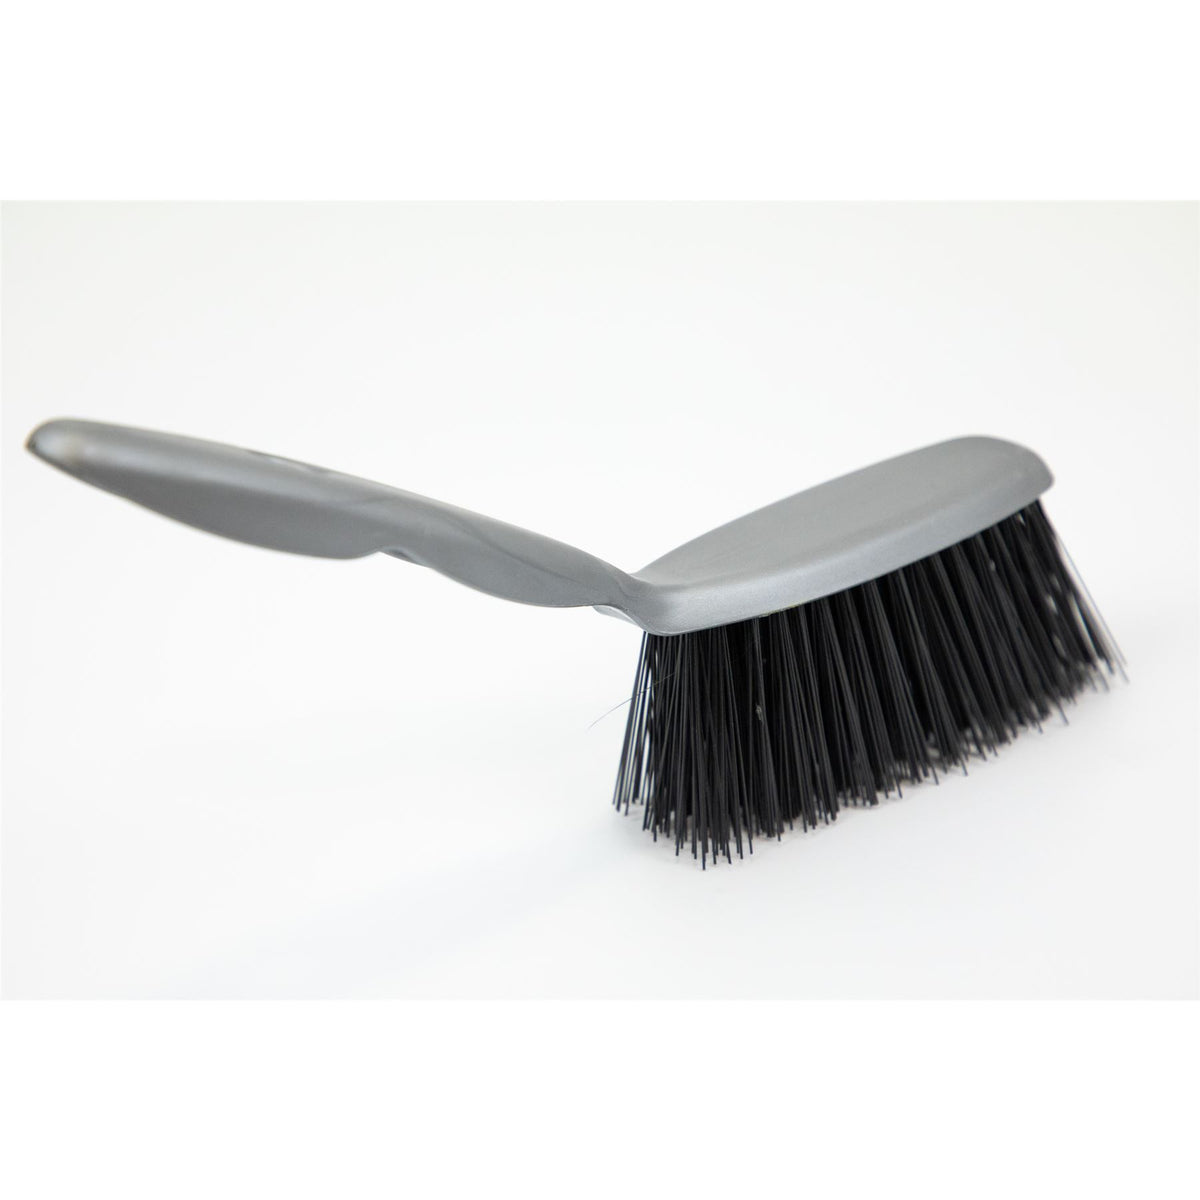 Plastic Hand Brush With Stiff Synthetic Bristles The